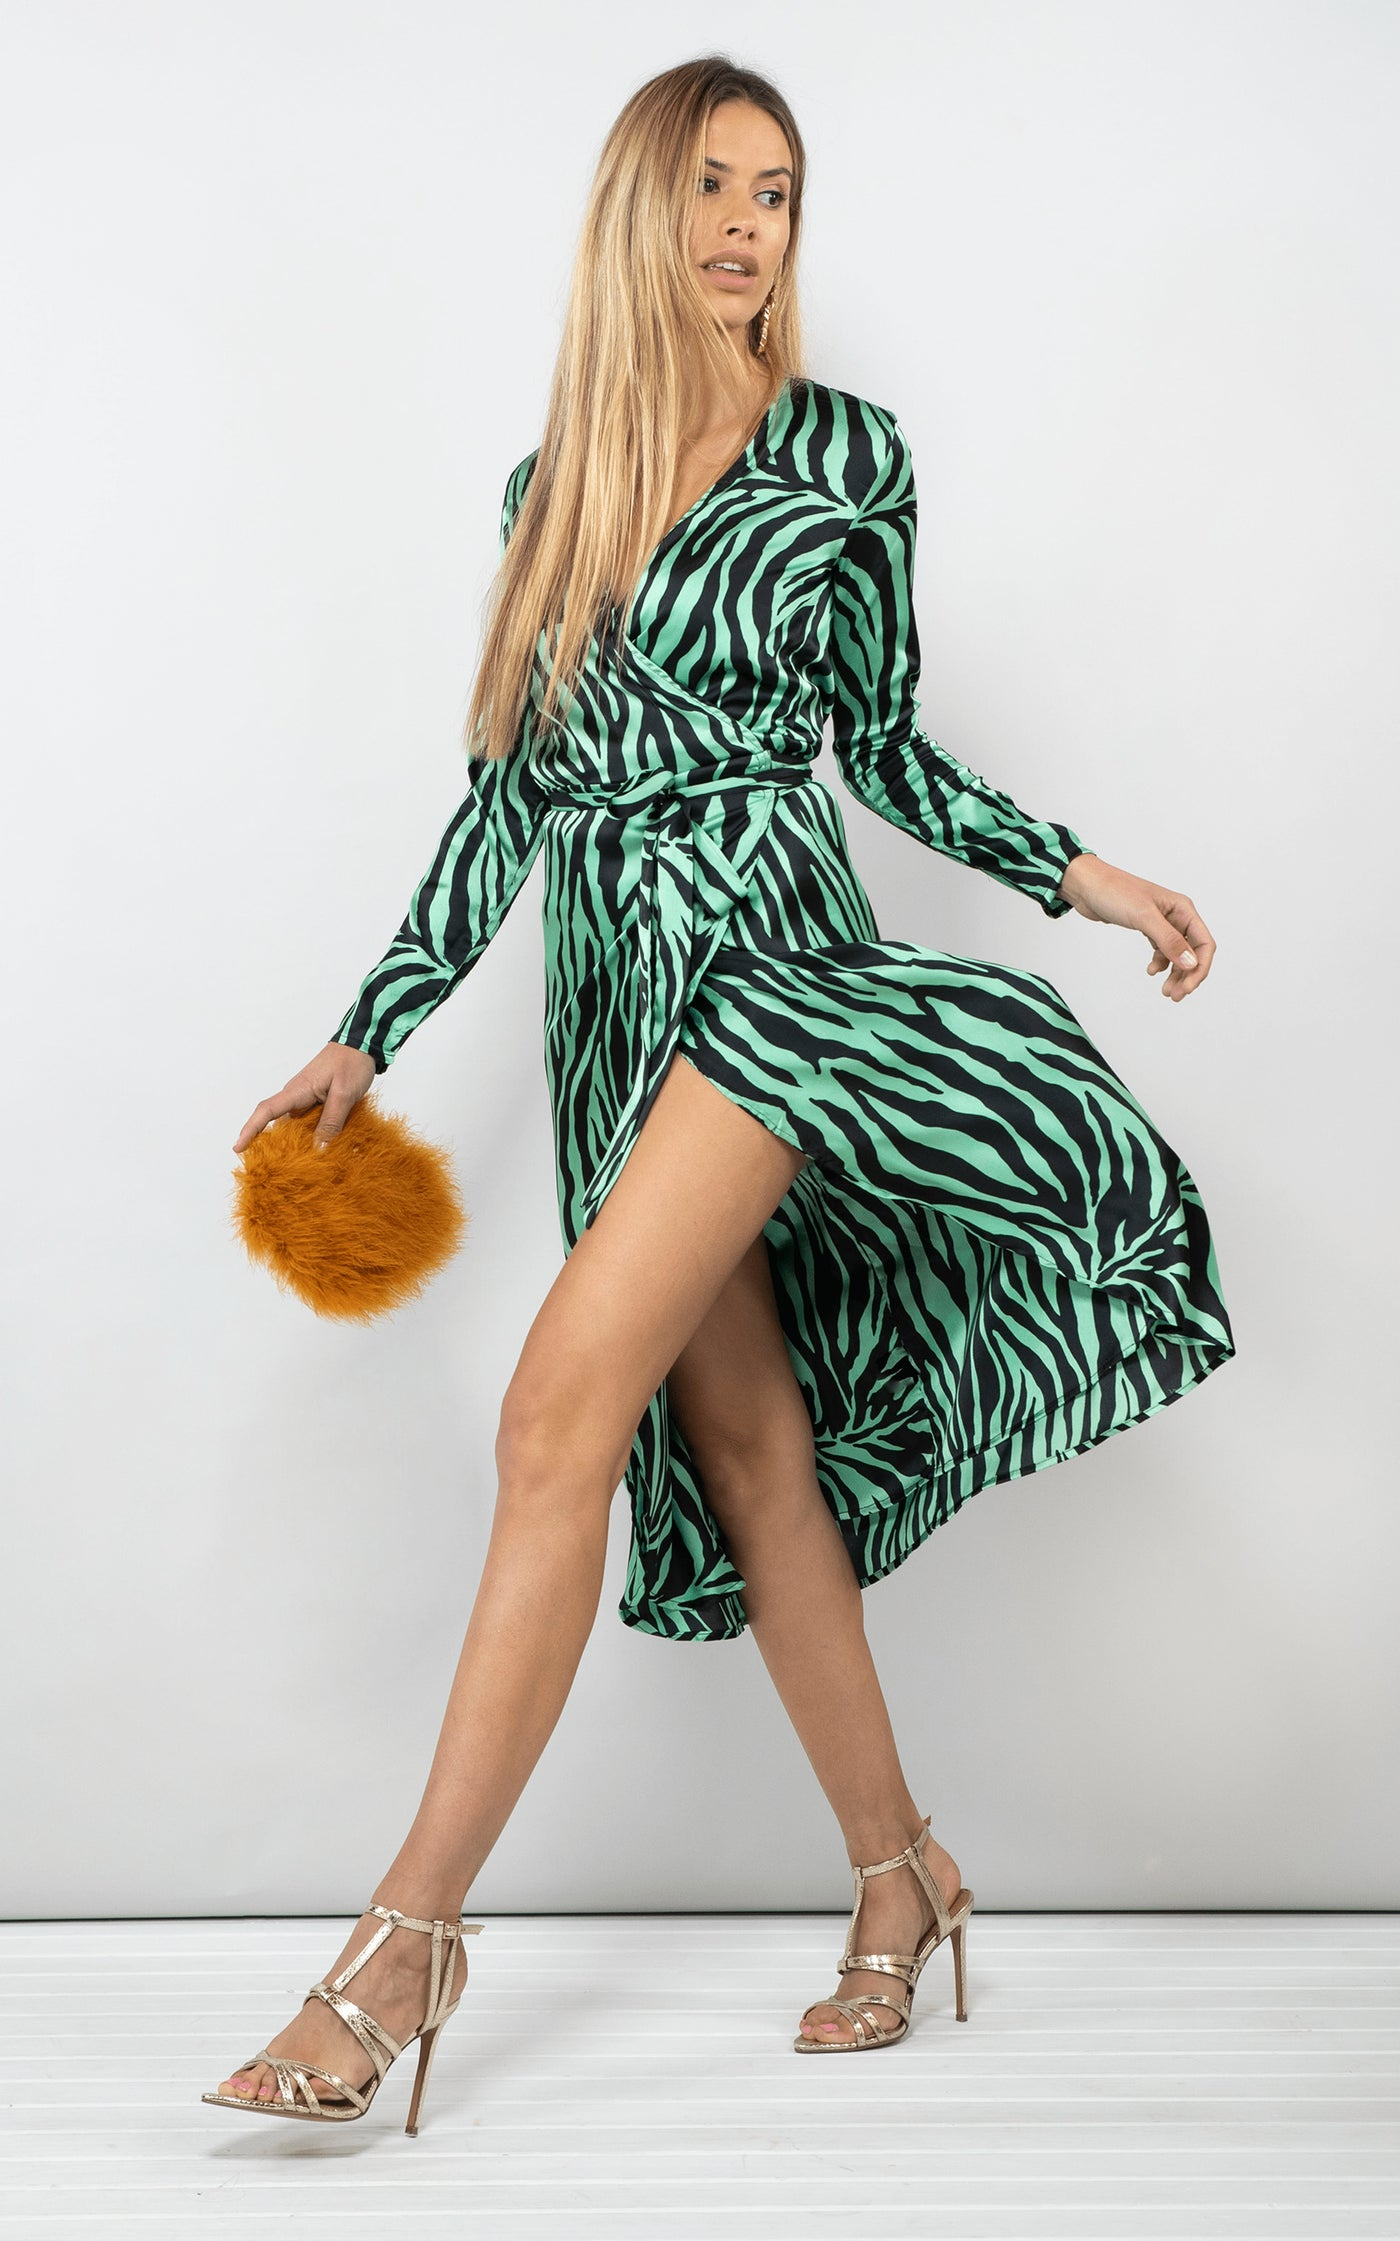 Dancing Leopard model walks forward holding handbag wearing Yondal Dress in green zebra print